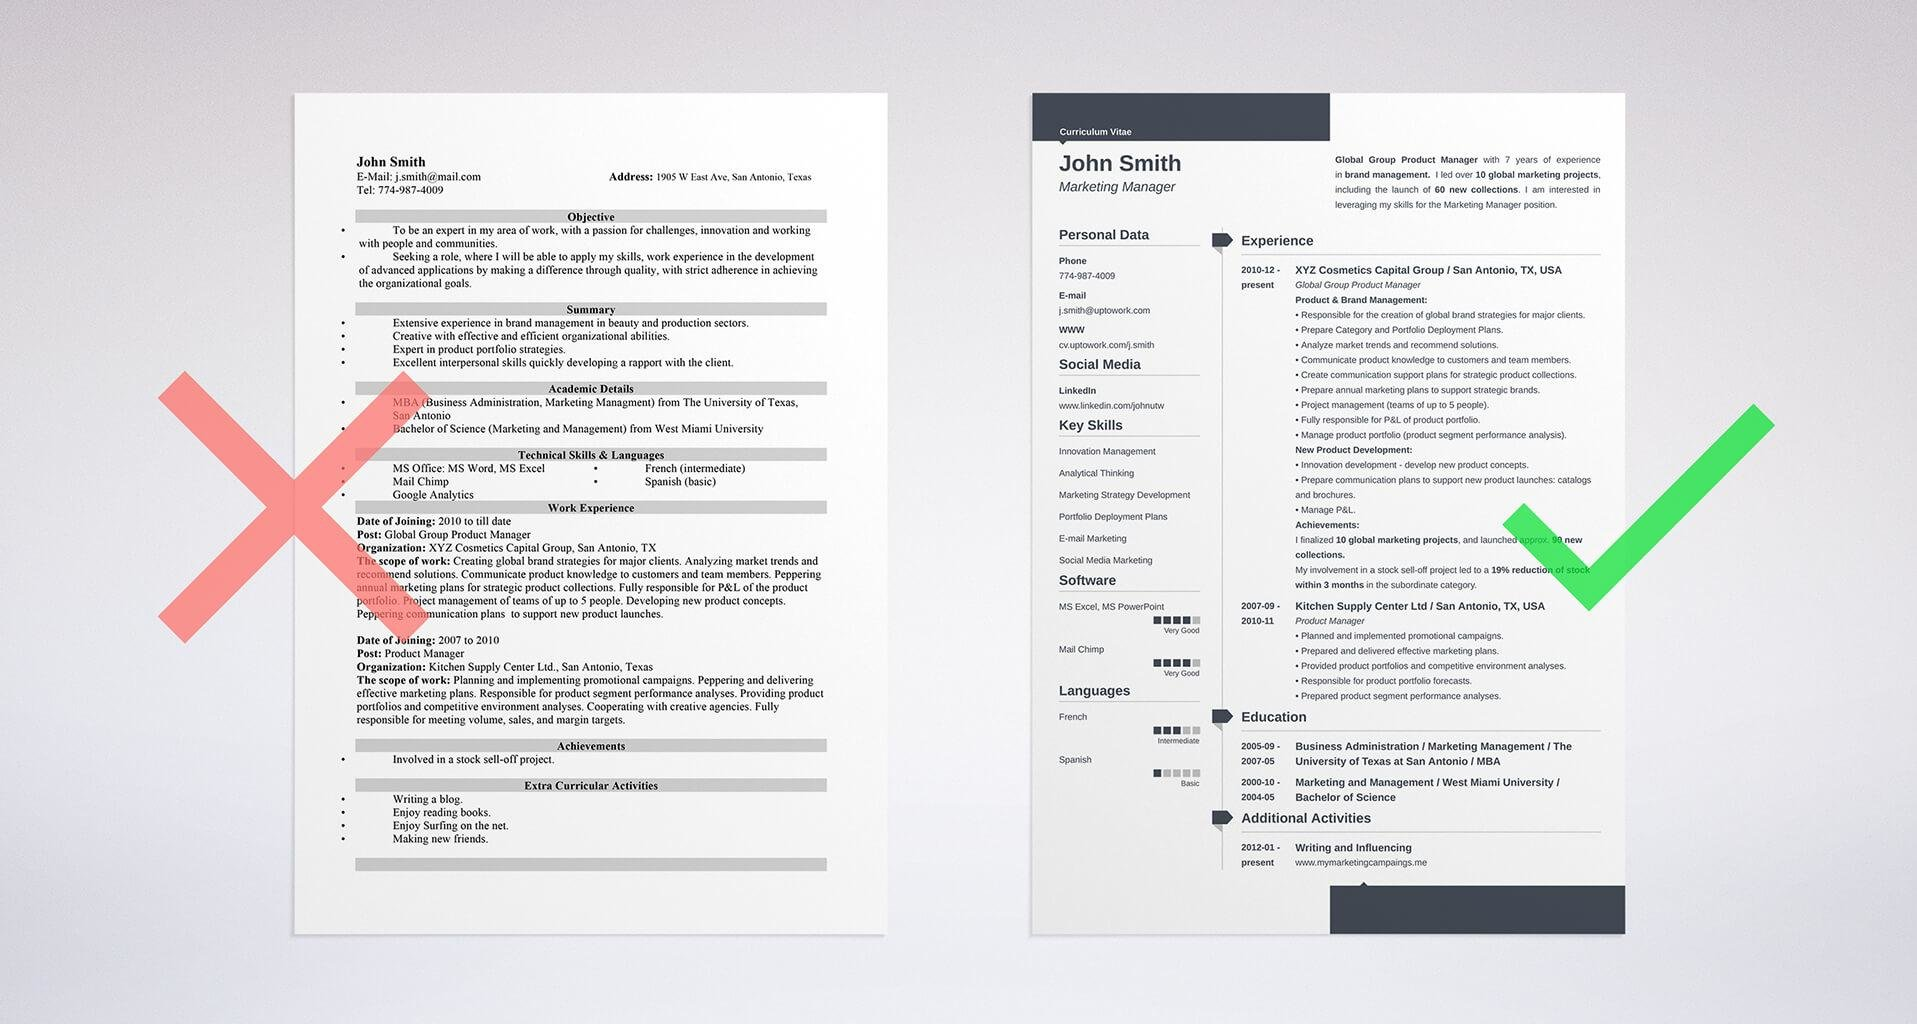 education on a resume template - Resume Education